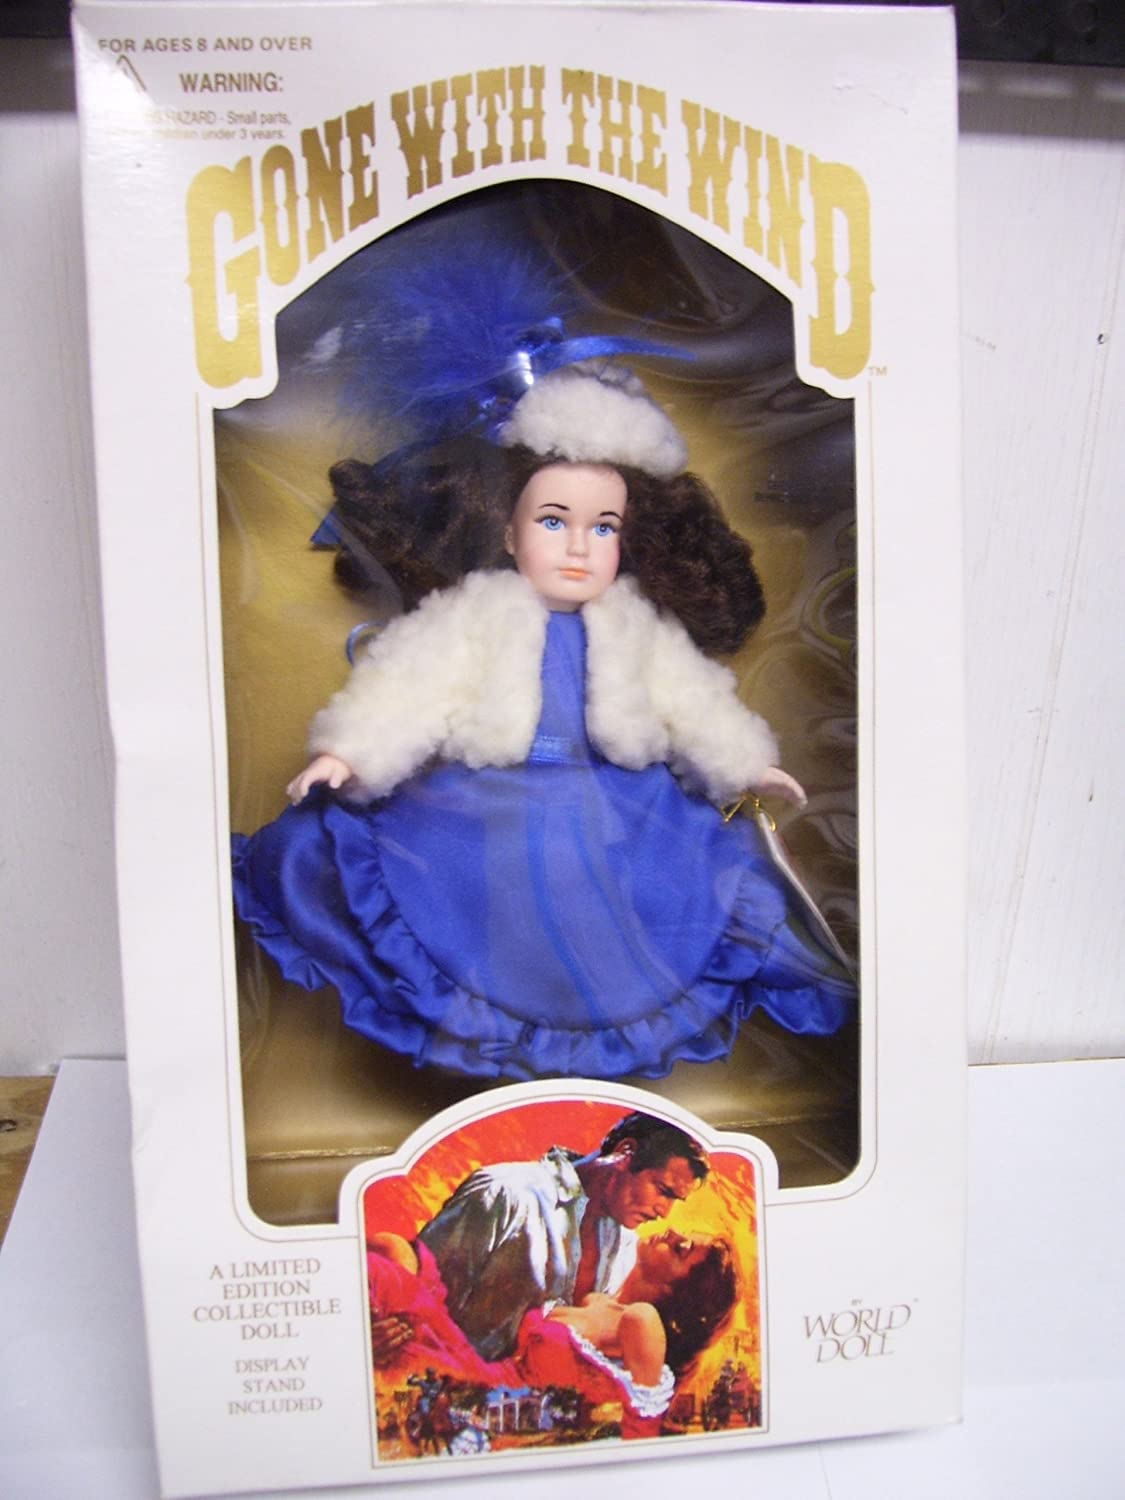 Gone With The Wind Bonnie Blue Limited Edition Collectors Doll Mattel SG/_B003HA9YA2/_US